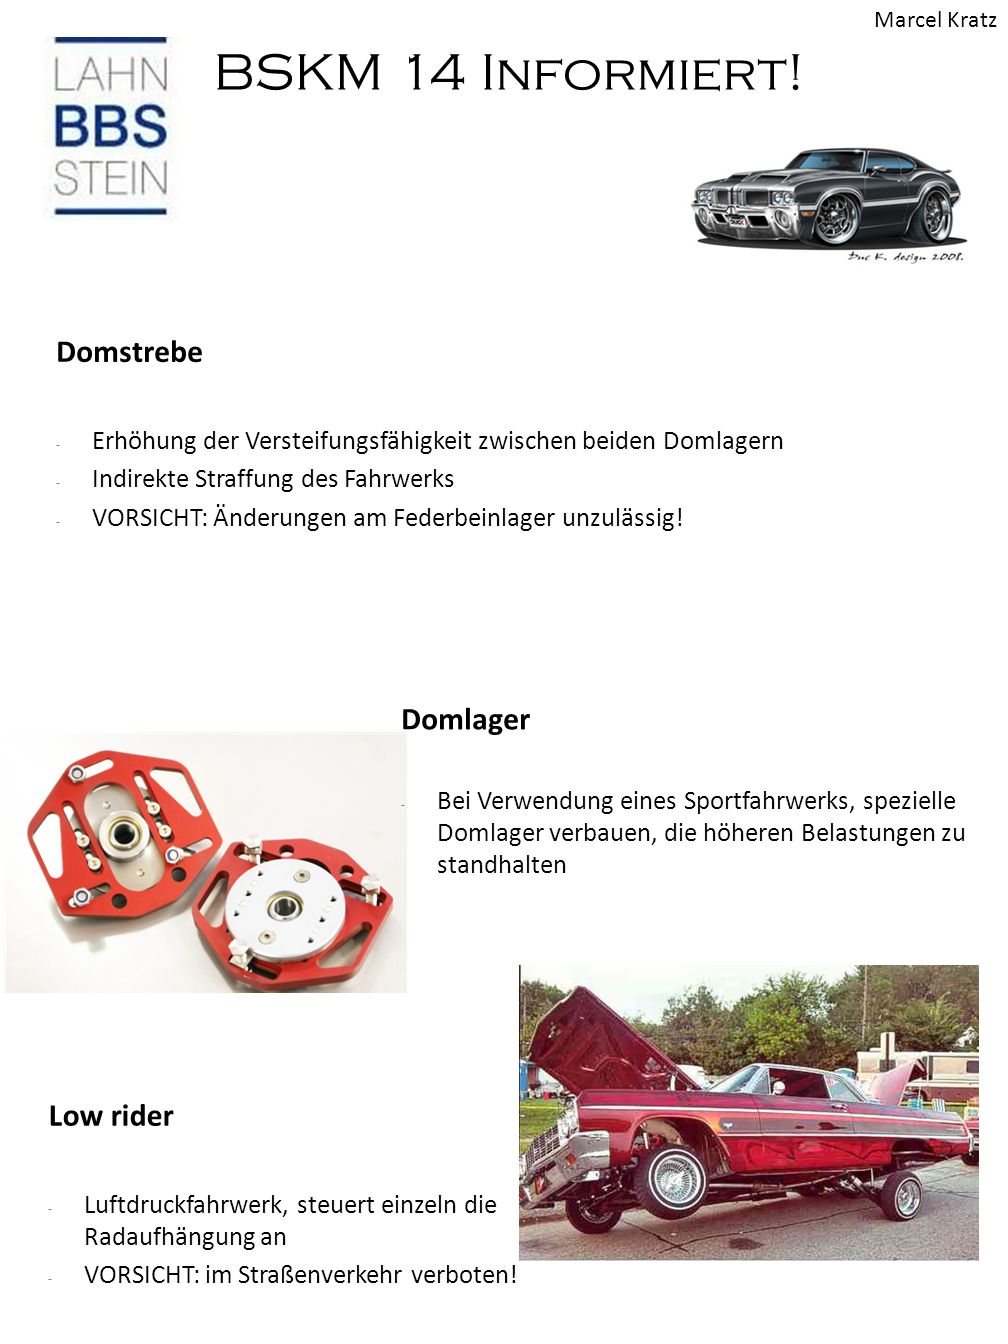 Domstrebe Domlager Low rider